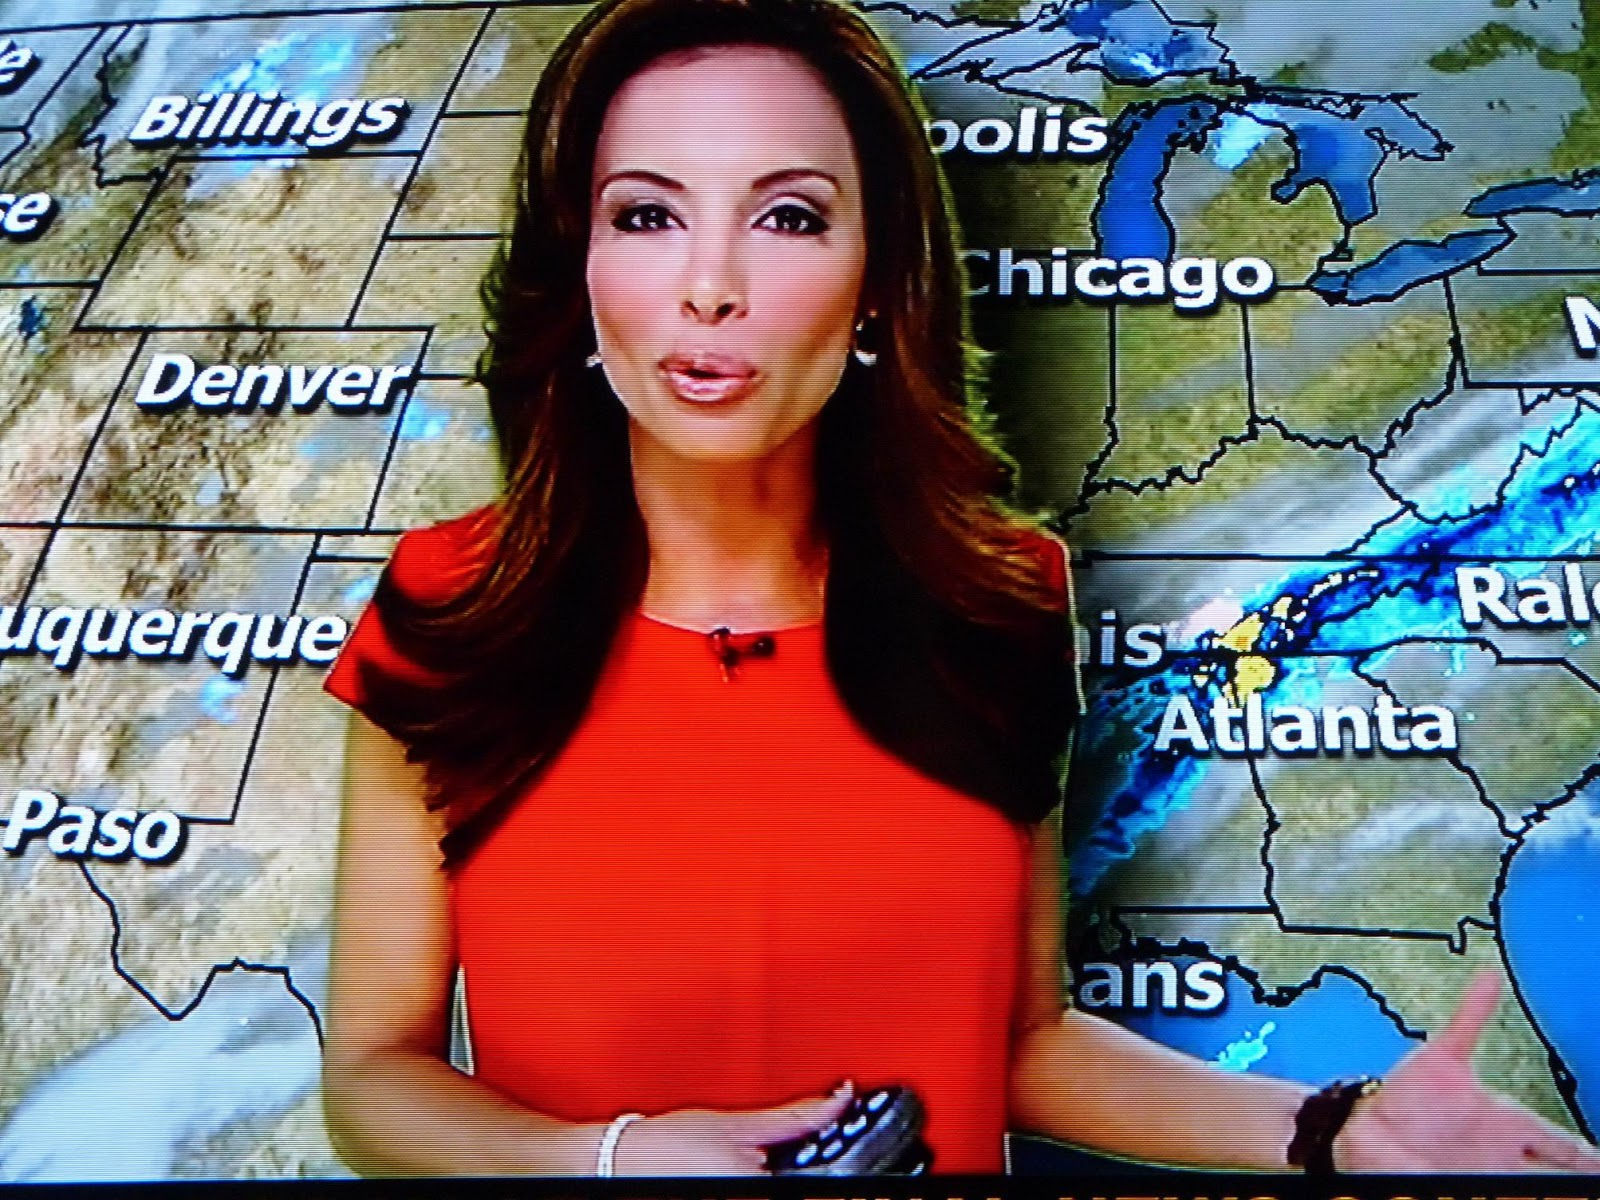 Fox News Maria Molina Weather Girl